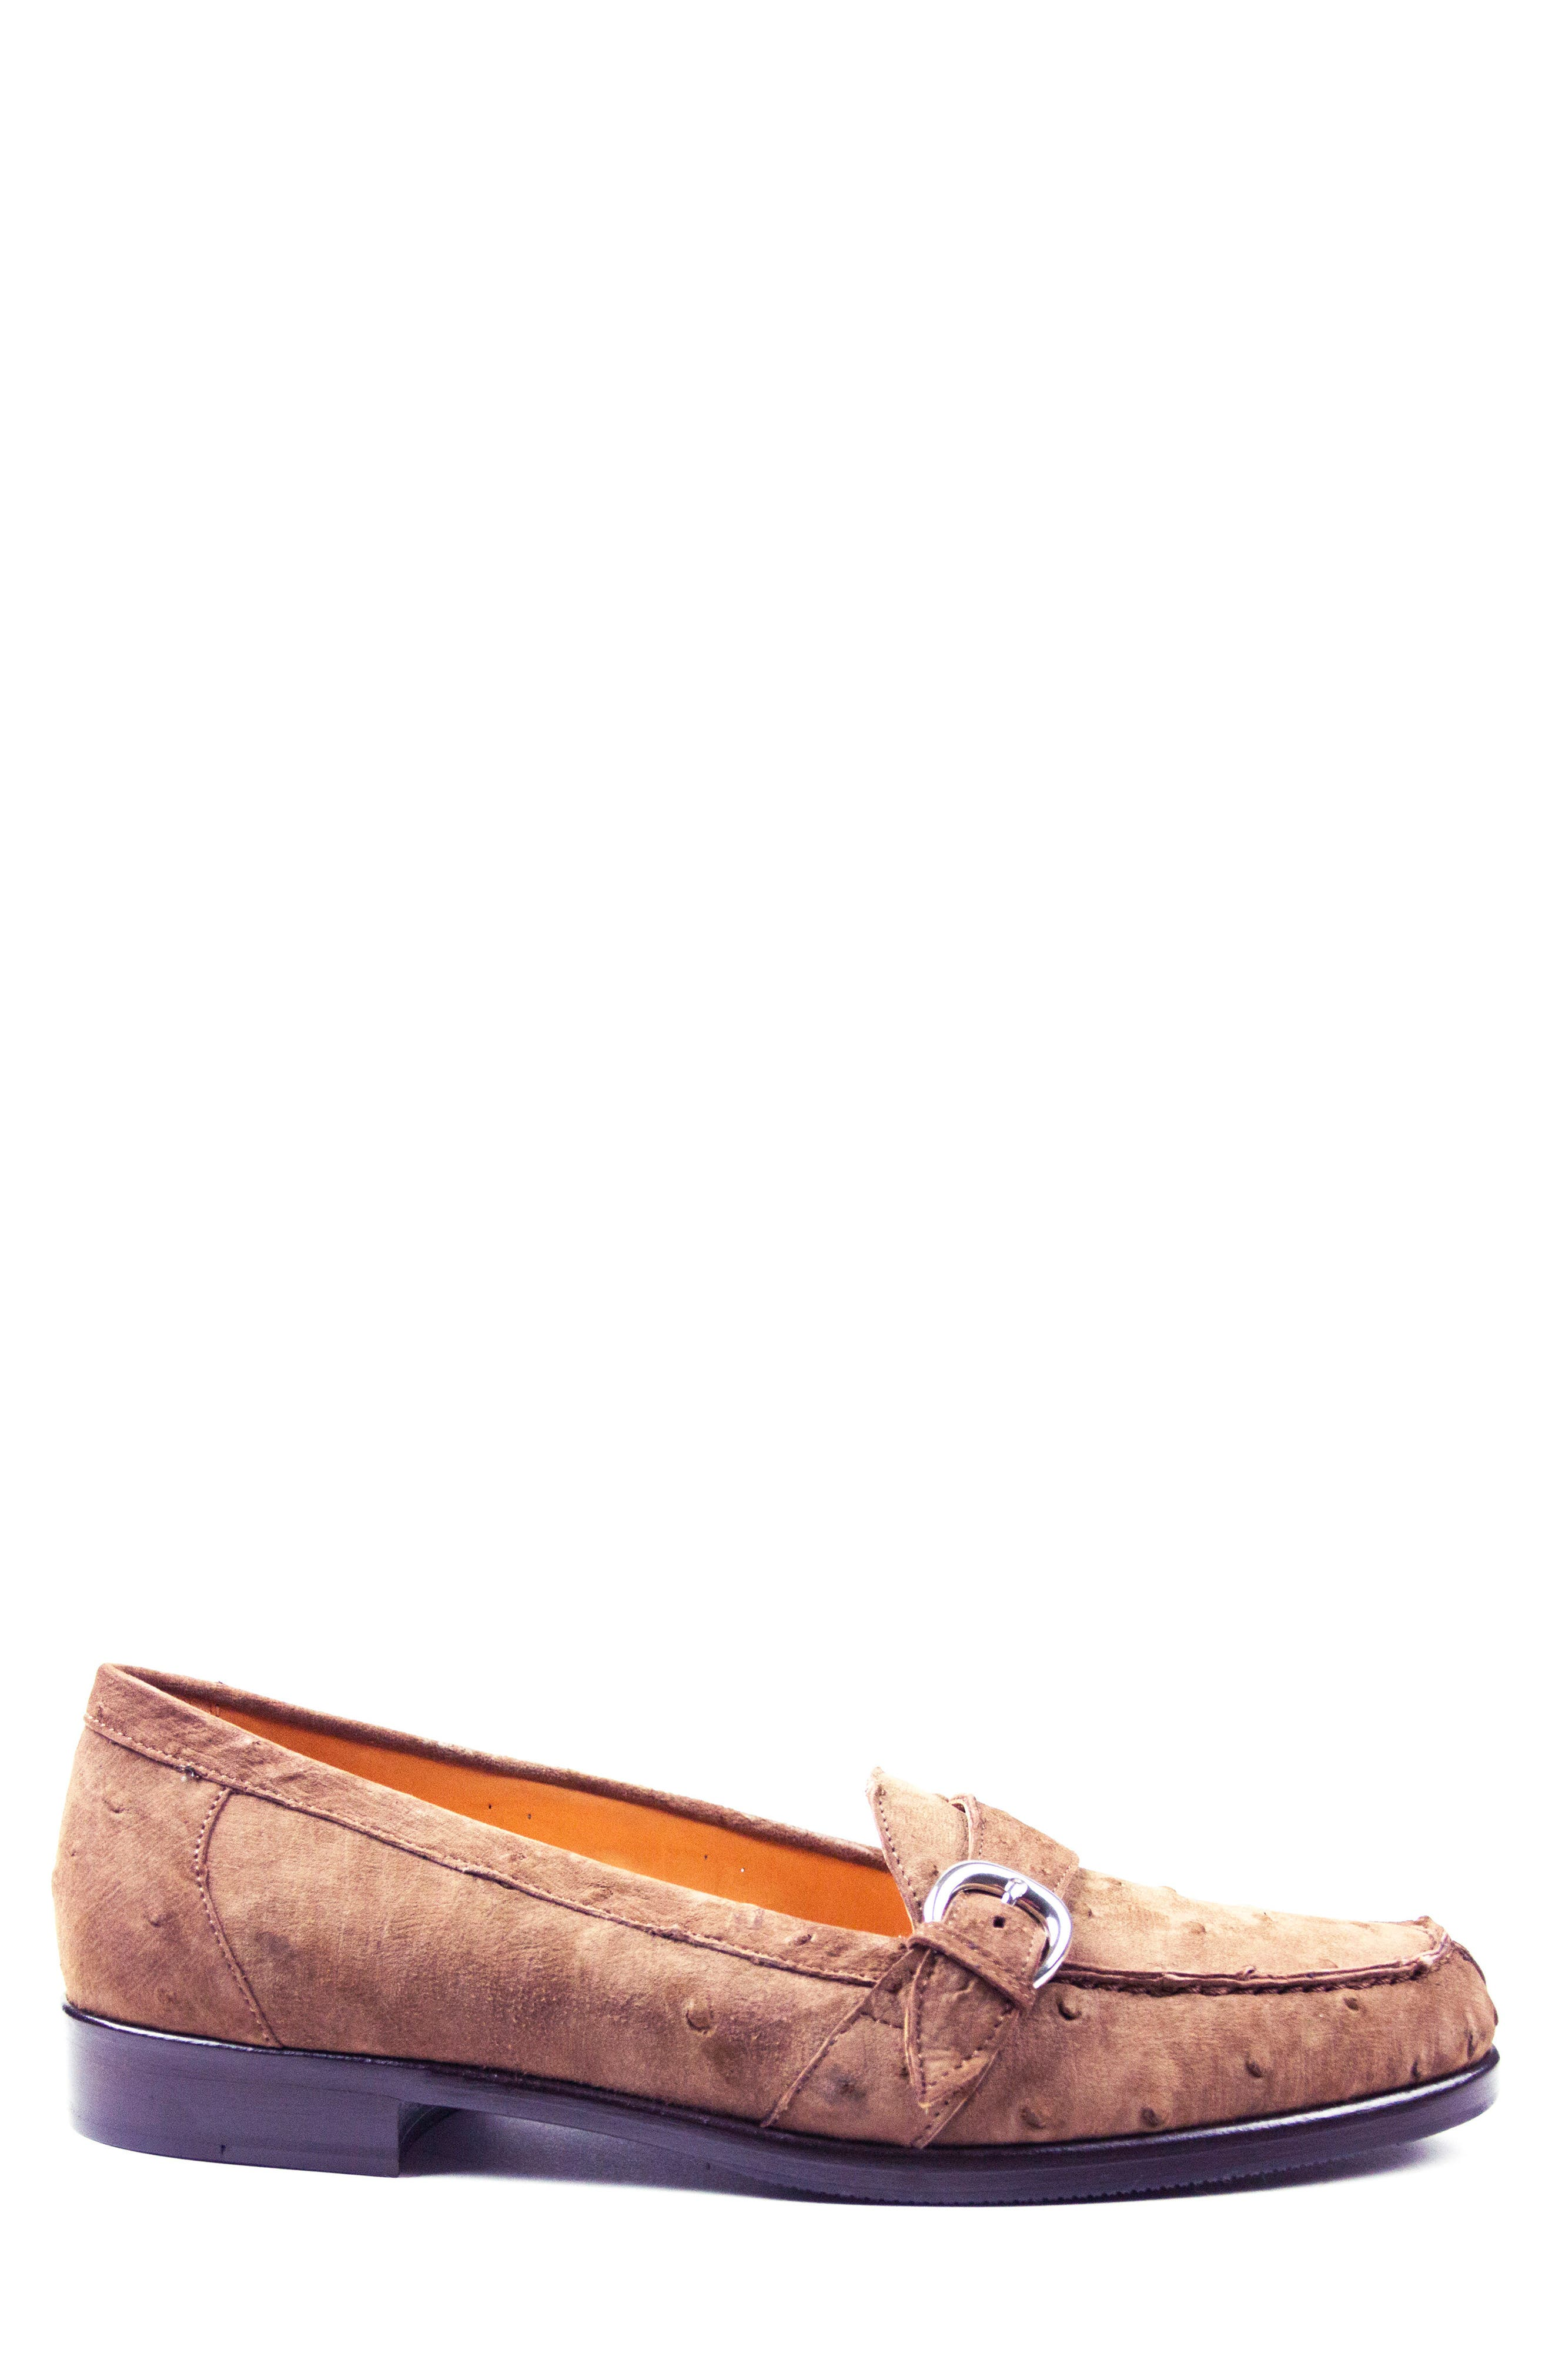 Orlando Teju Ostrich Loafer,                             Alternate thumbnail 3, color,                             200